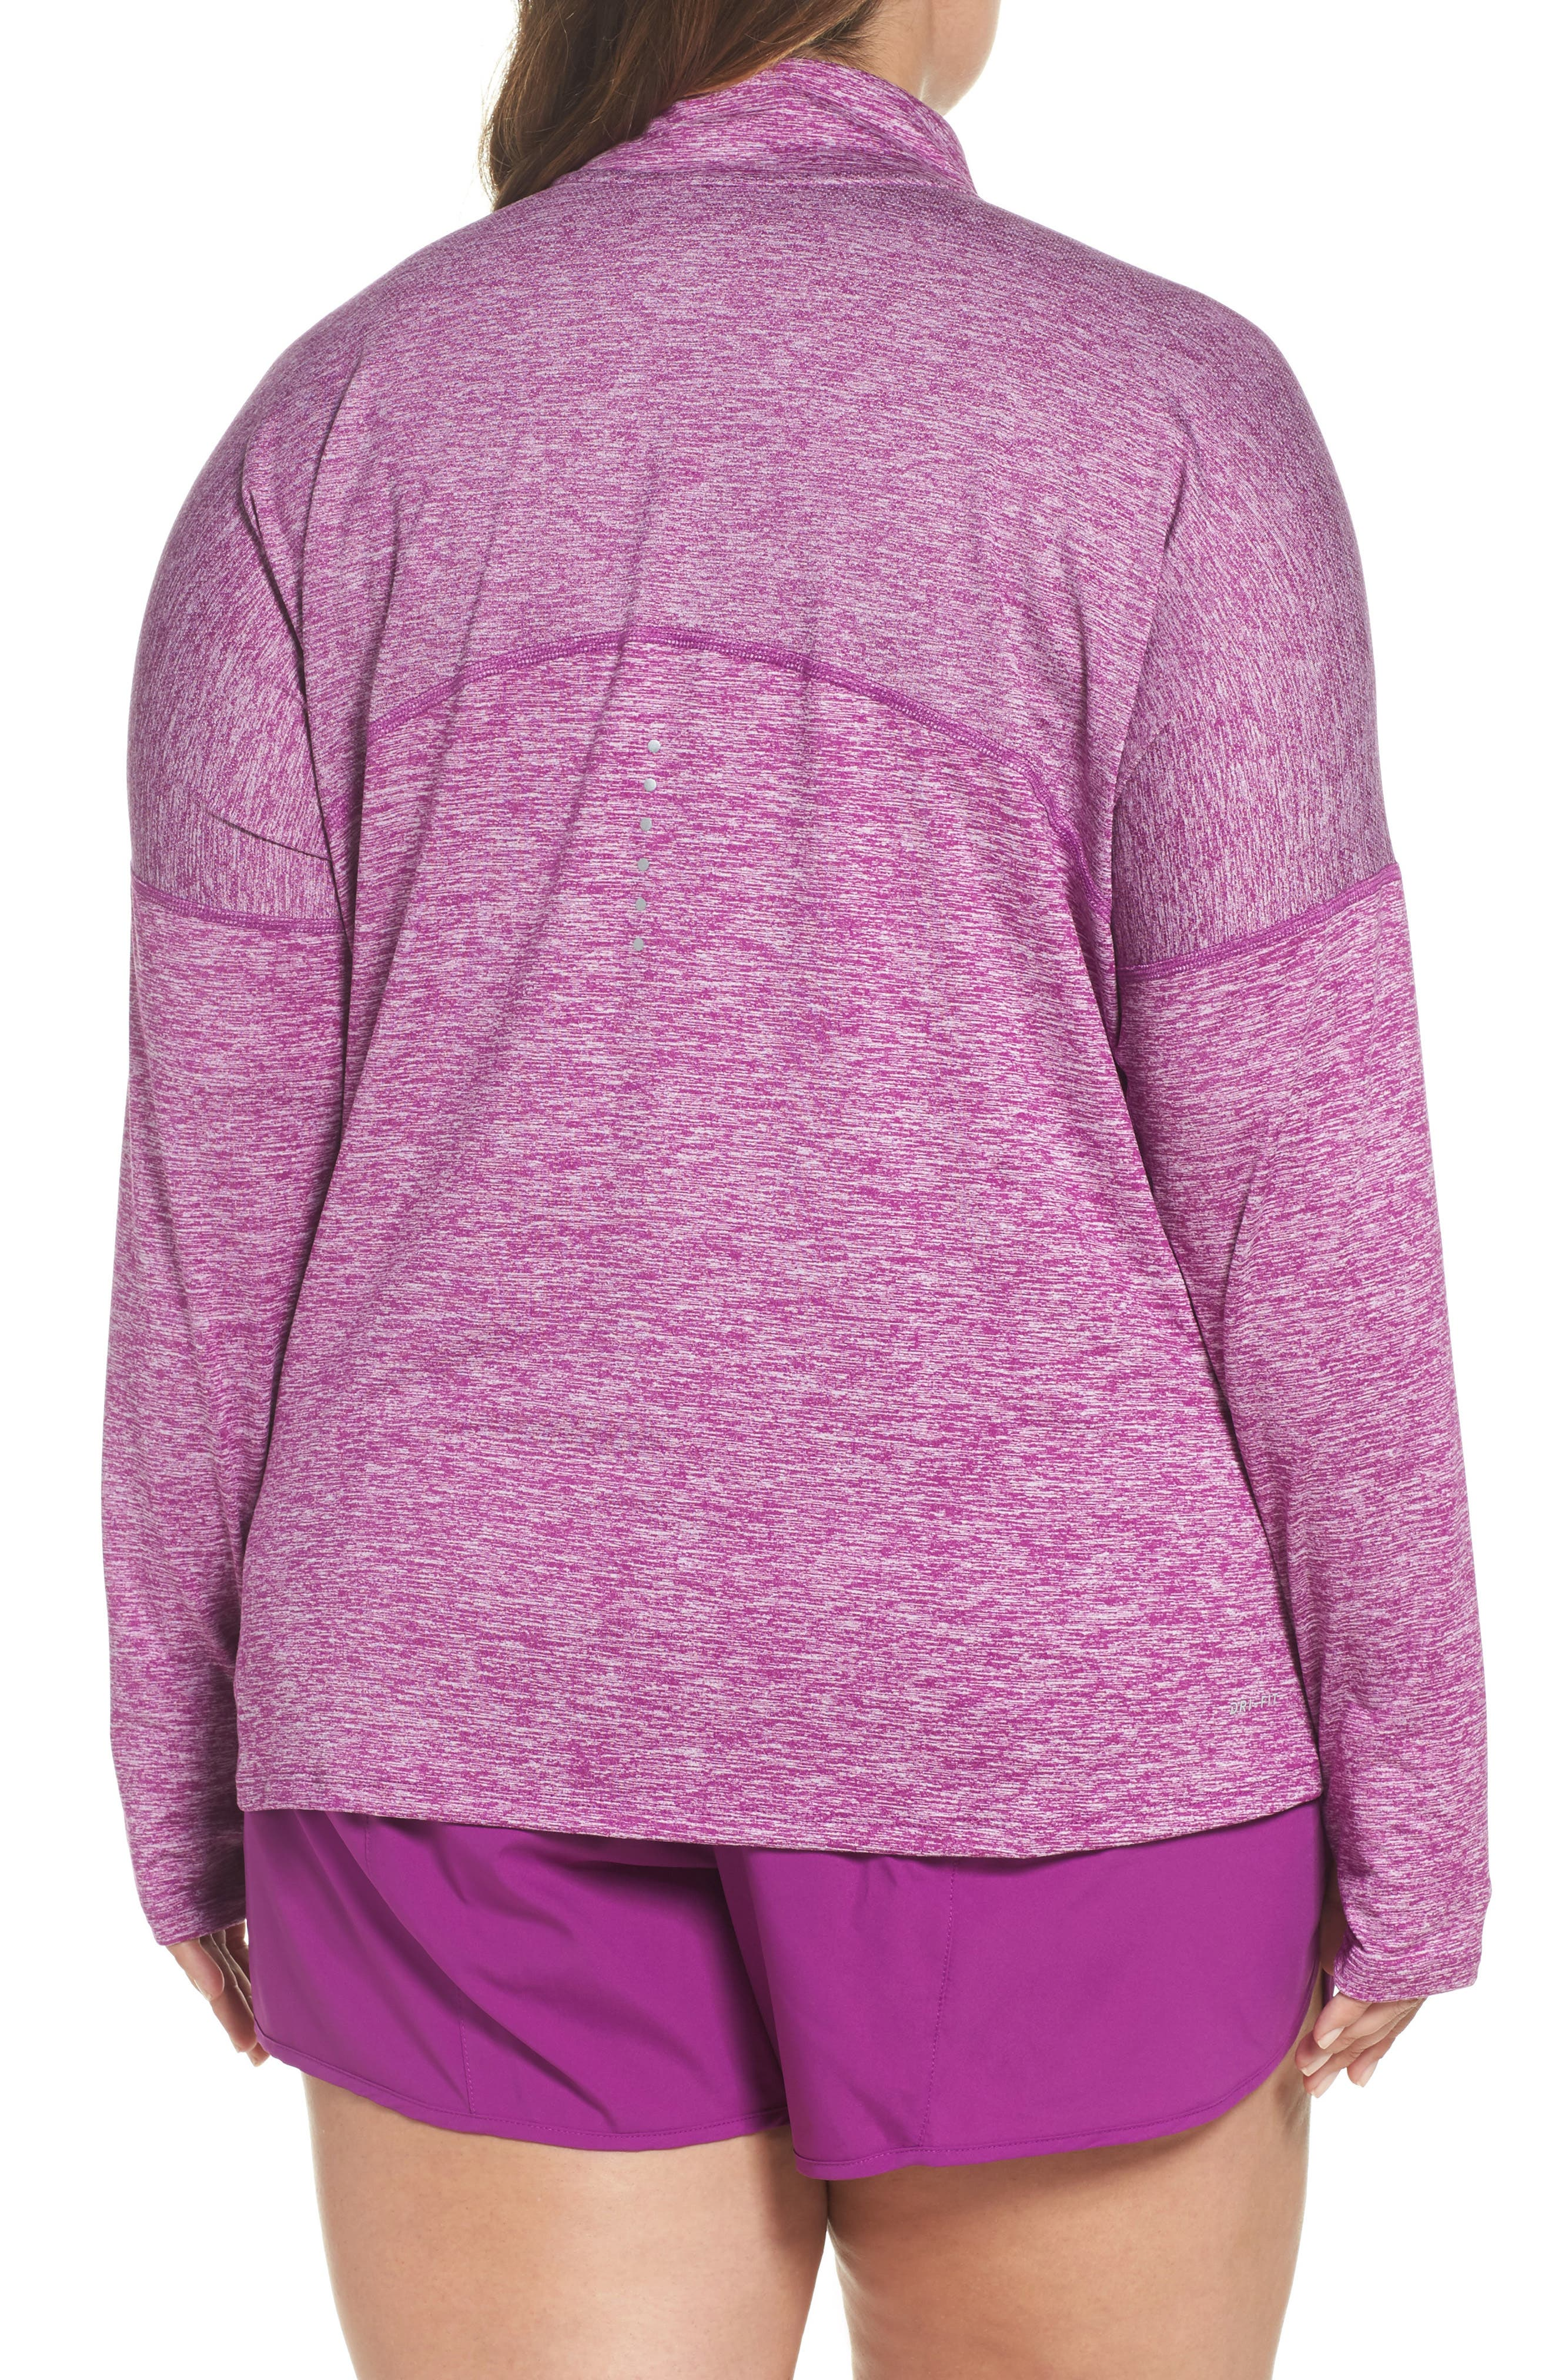 Dry Element Half Zip Top,                             Alternate thumbnail 2, color,                             Bold Berry/ Heather